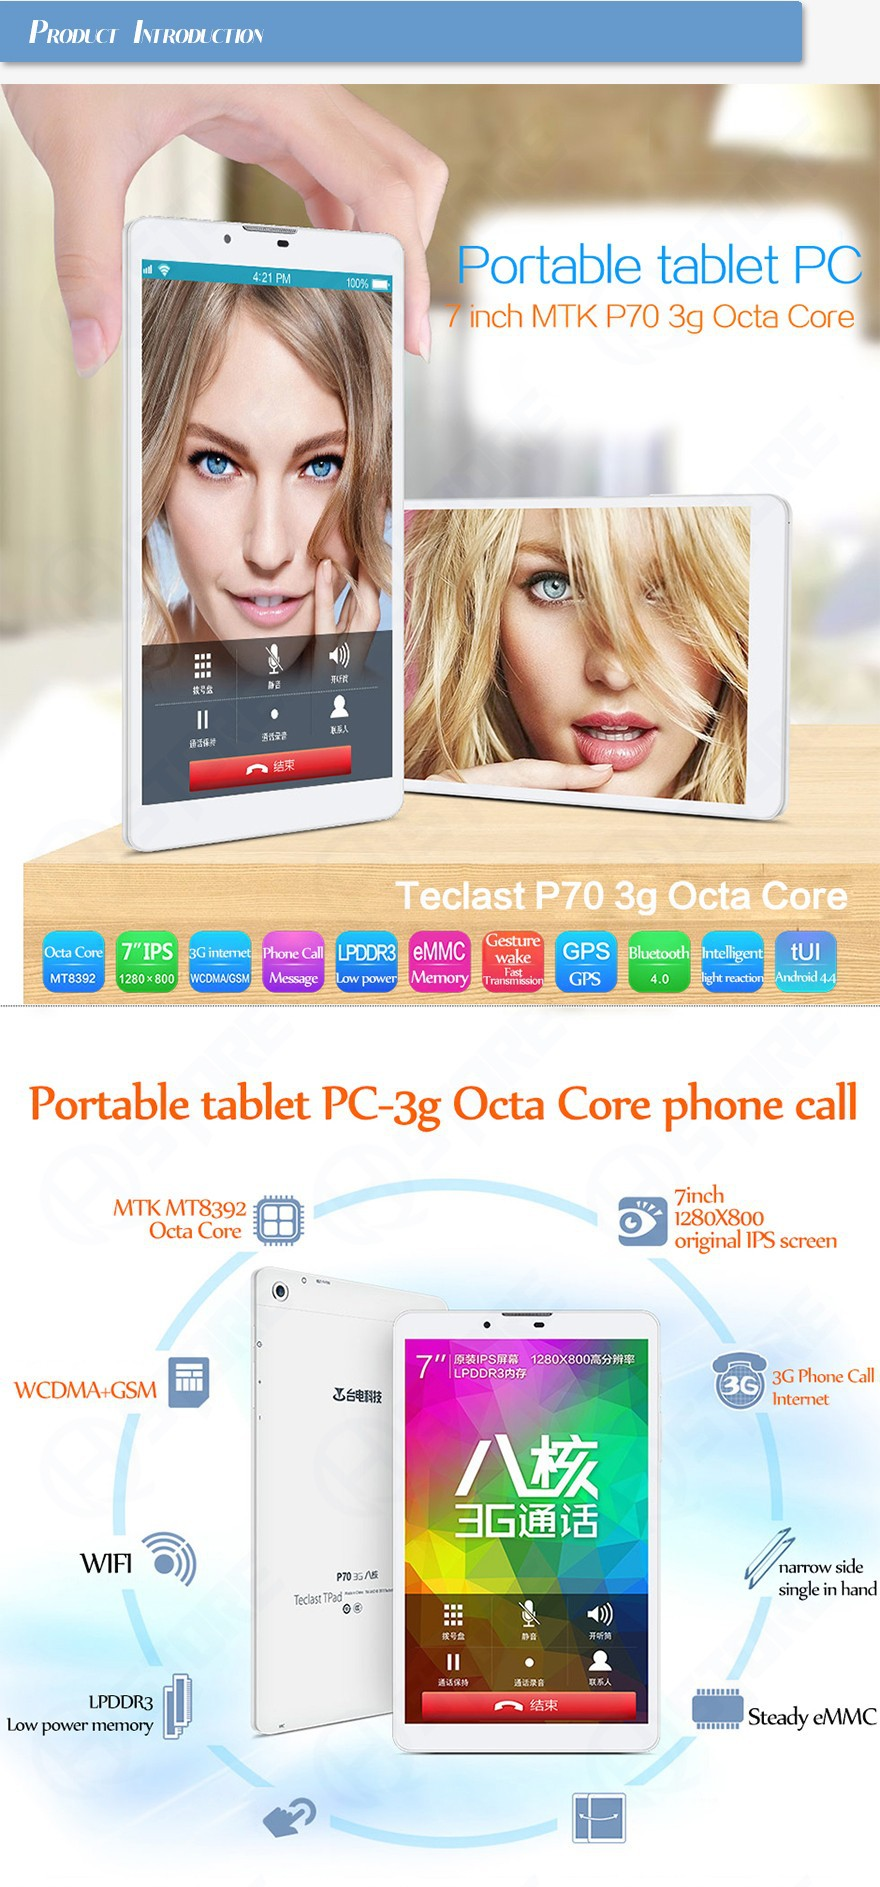 Планшетный ПК Octa 3G P70 Teclast PC 7/ips Android 4.4 MT8392 3G 1280 * 800 1GB LPDDR3/8 eMMC